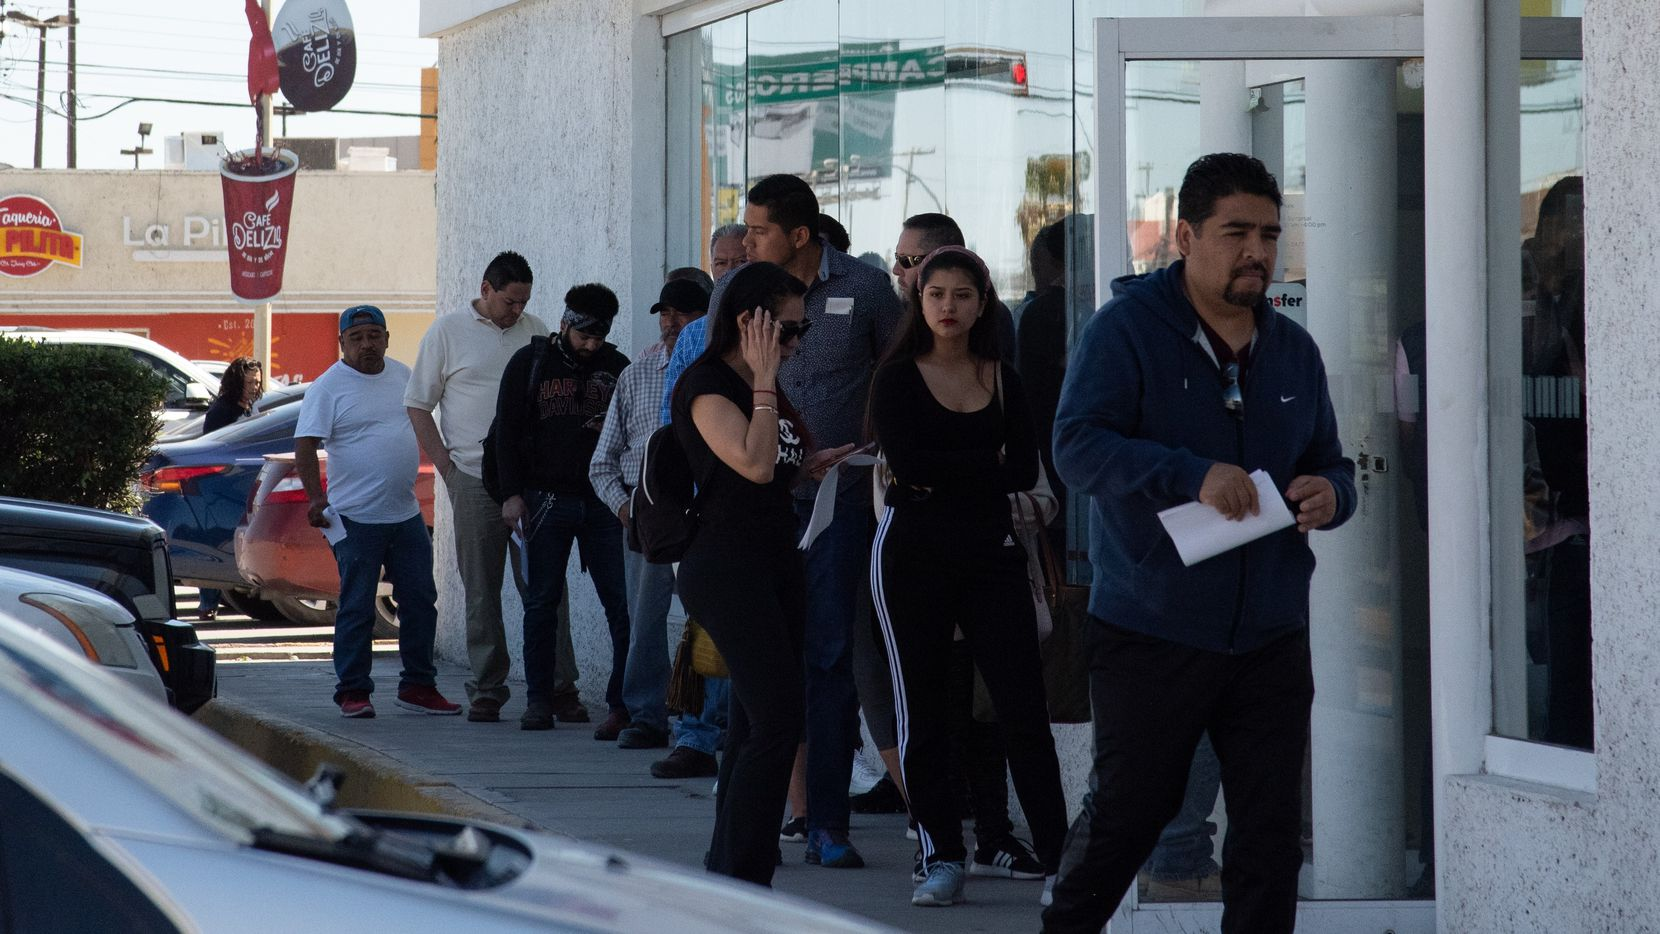 People line up to use an ATM in Ciudad Juarez, Mexico, March 25,2020. Unlike in the bordering city of El Paso, Many in Juarez have not taken warnings to stay home as seriously.